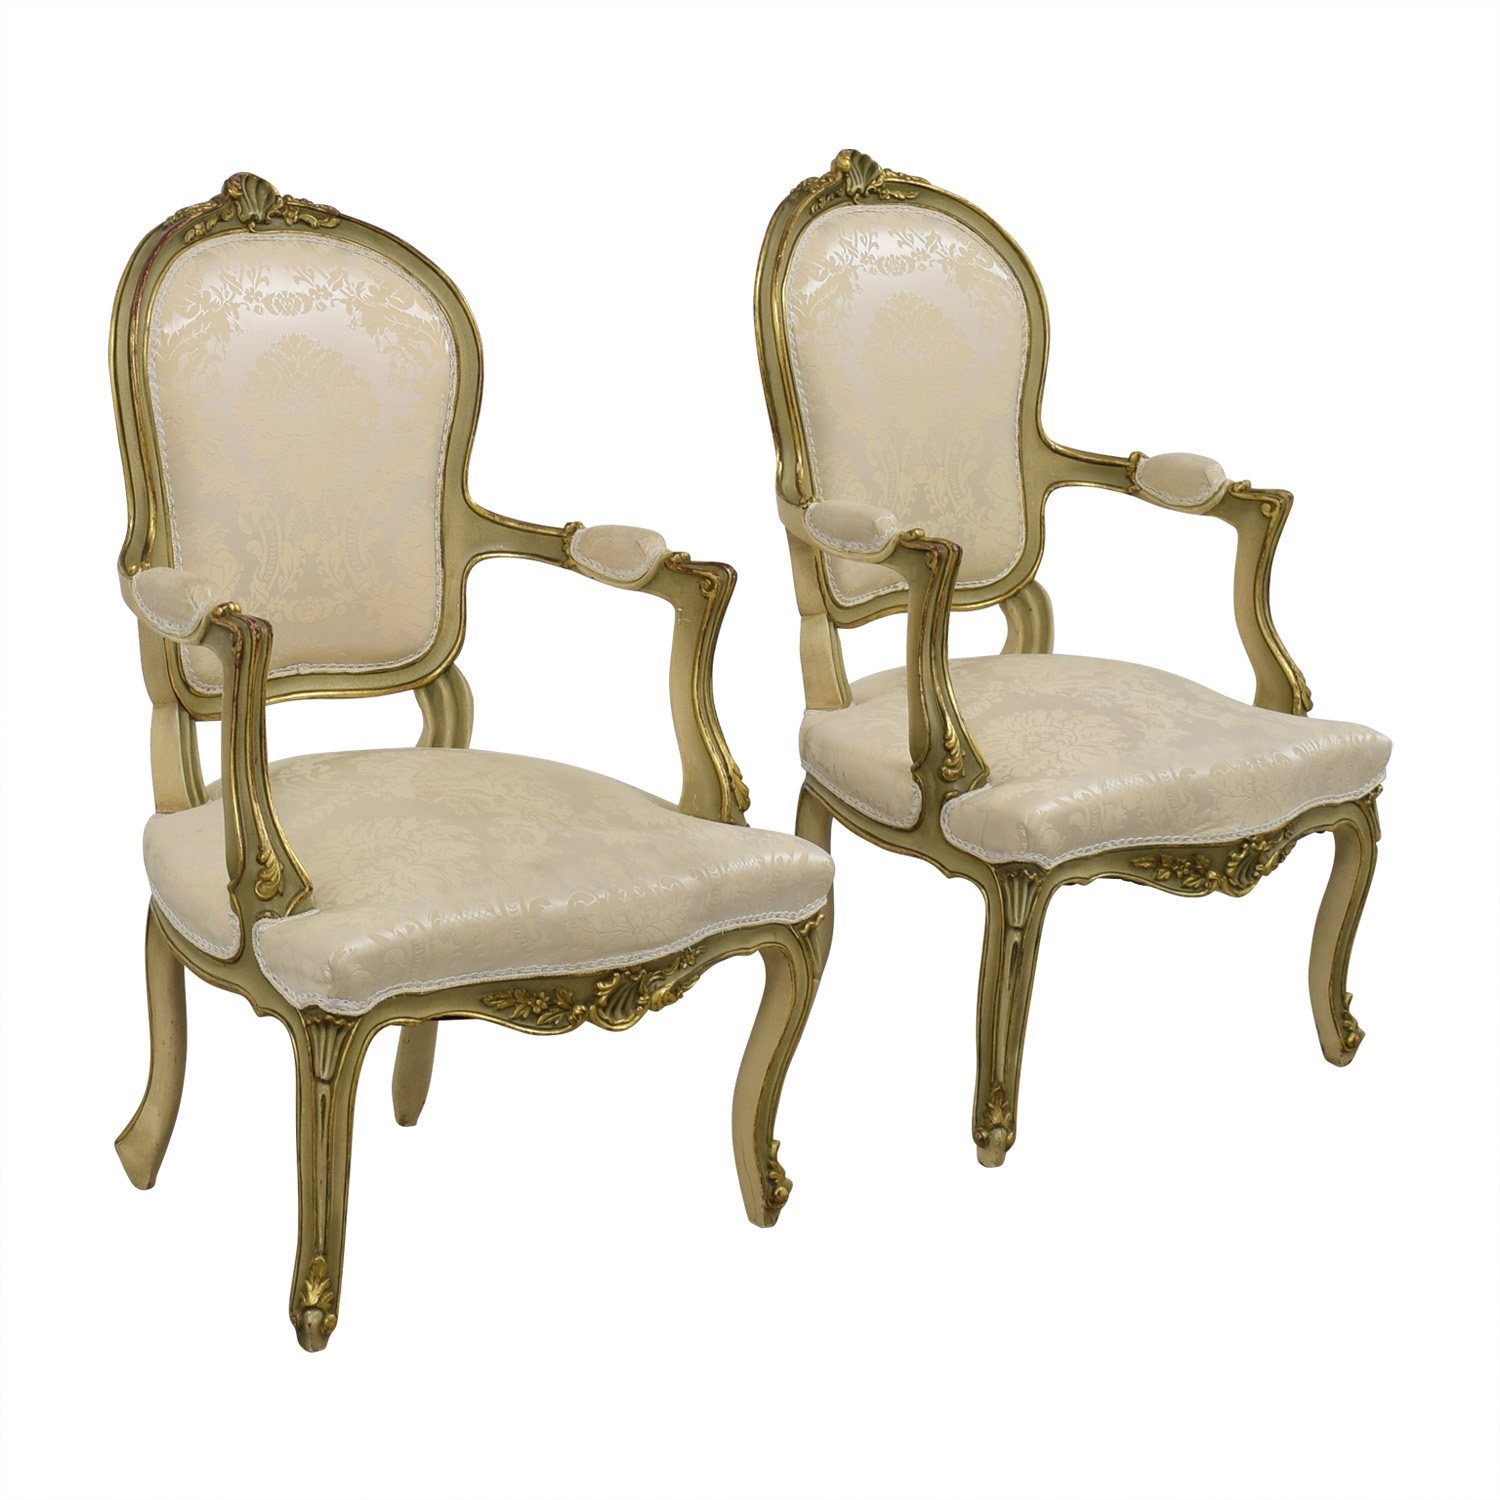 Antique White Jacquard Upholstered Gold Arm Chairs nj